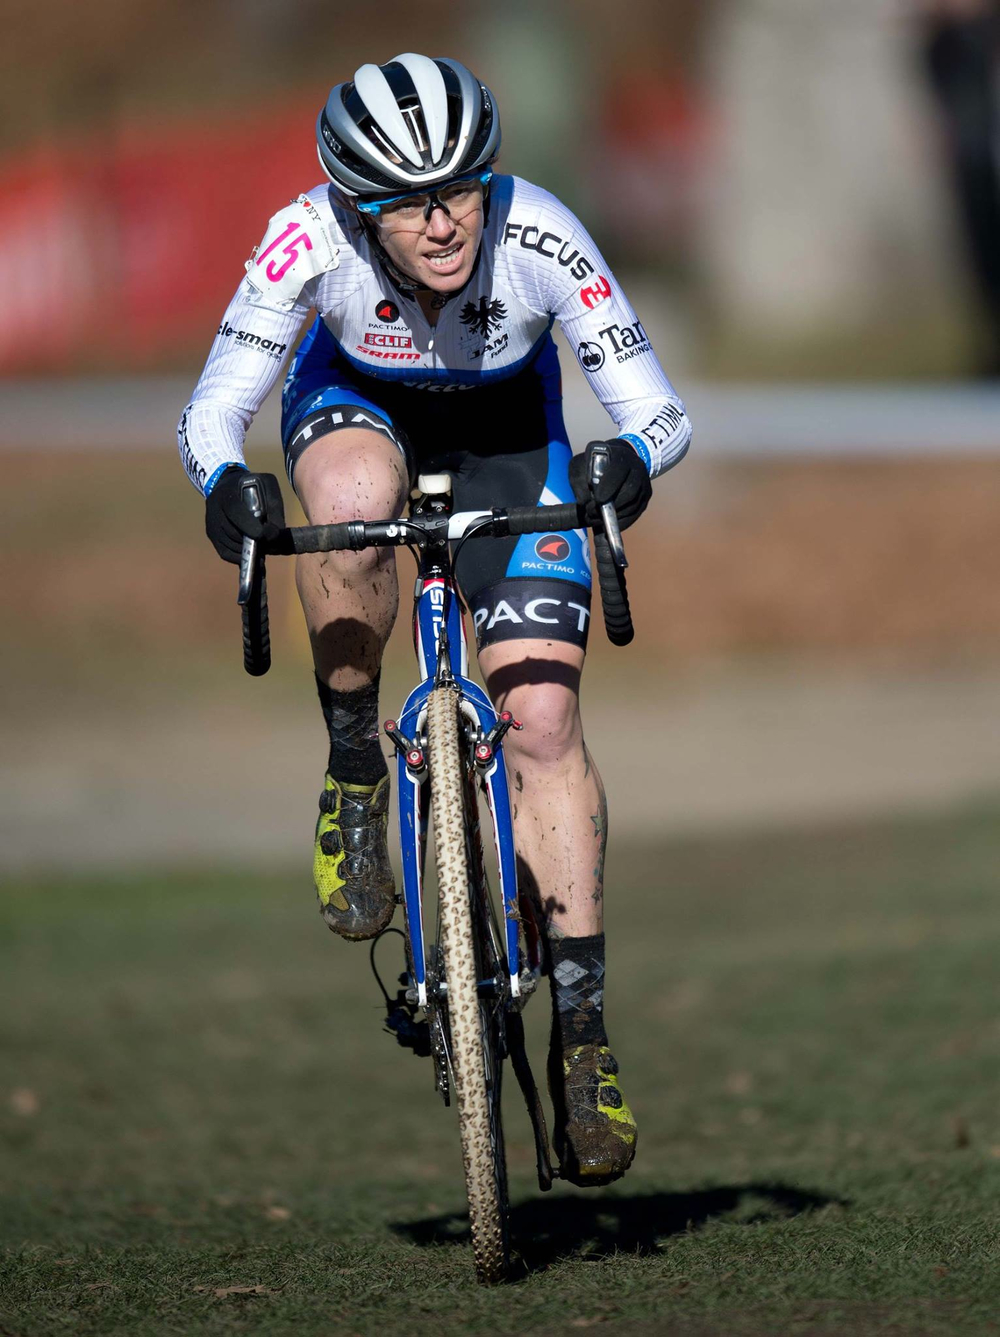 Sunny days for Jena Greaser, taking 4th on Saturday and 3rd on Sunday in Supercross Cup. Photo by Nin Lei.